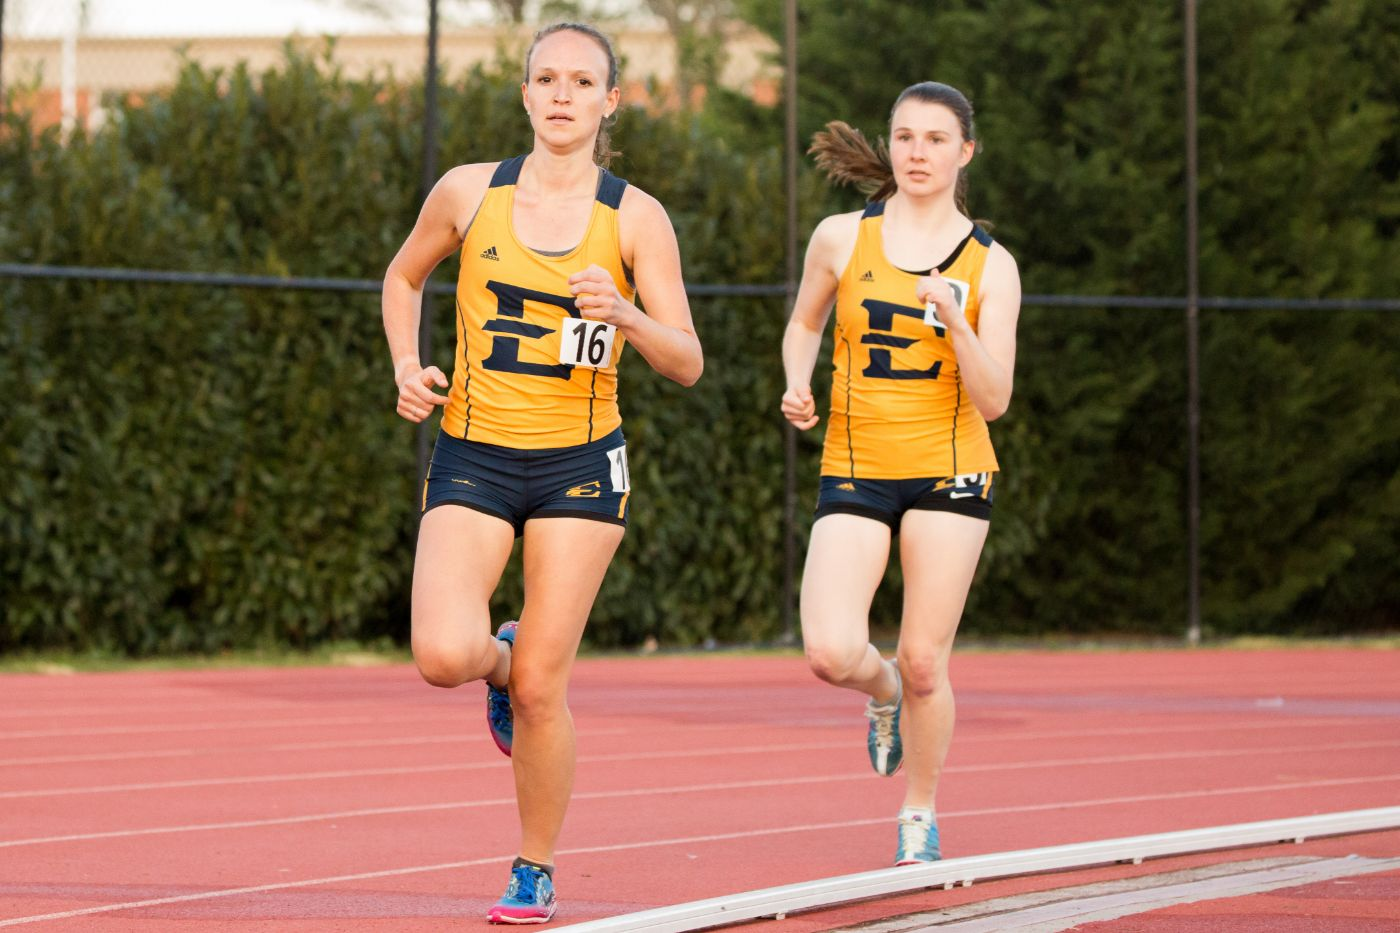 Bucs shatter personal records in split meets